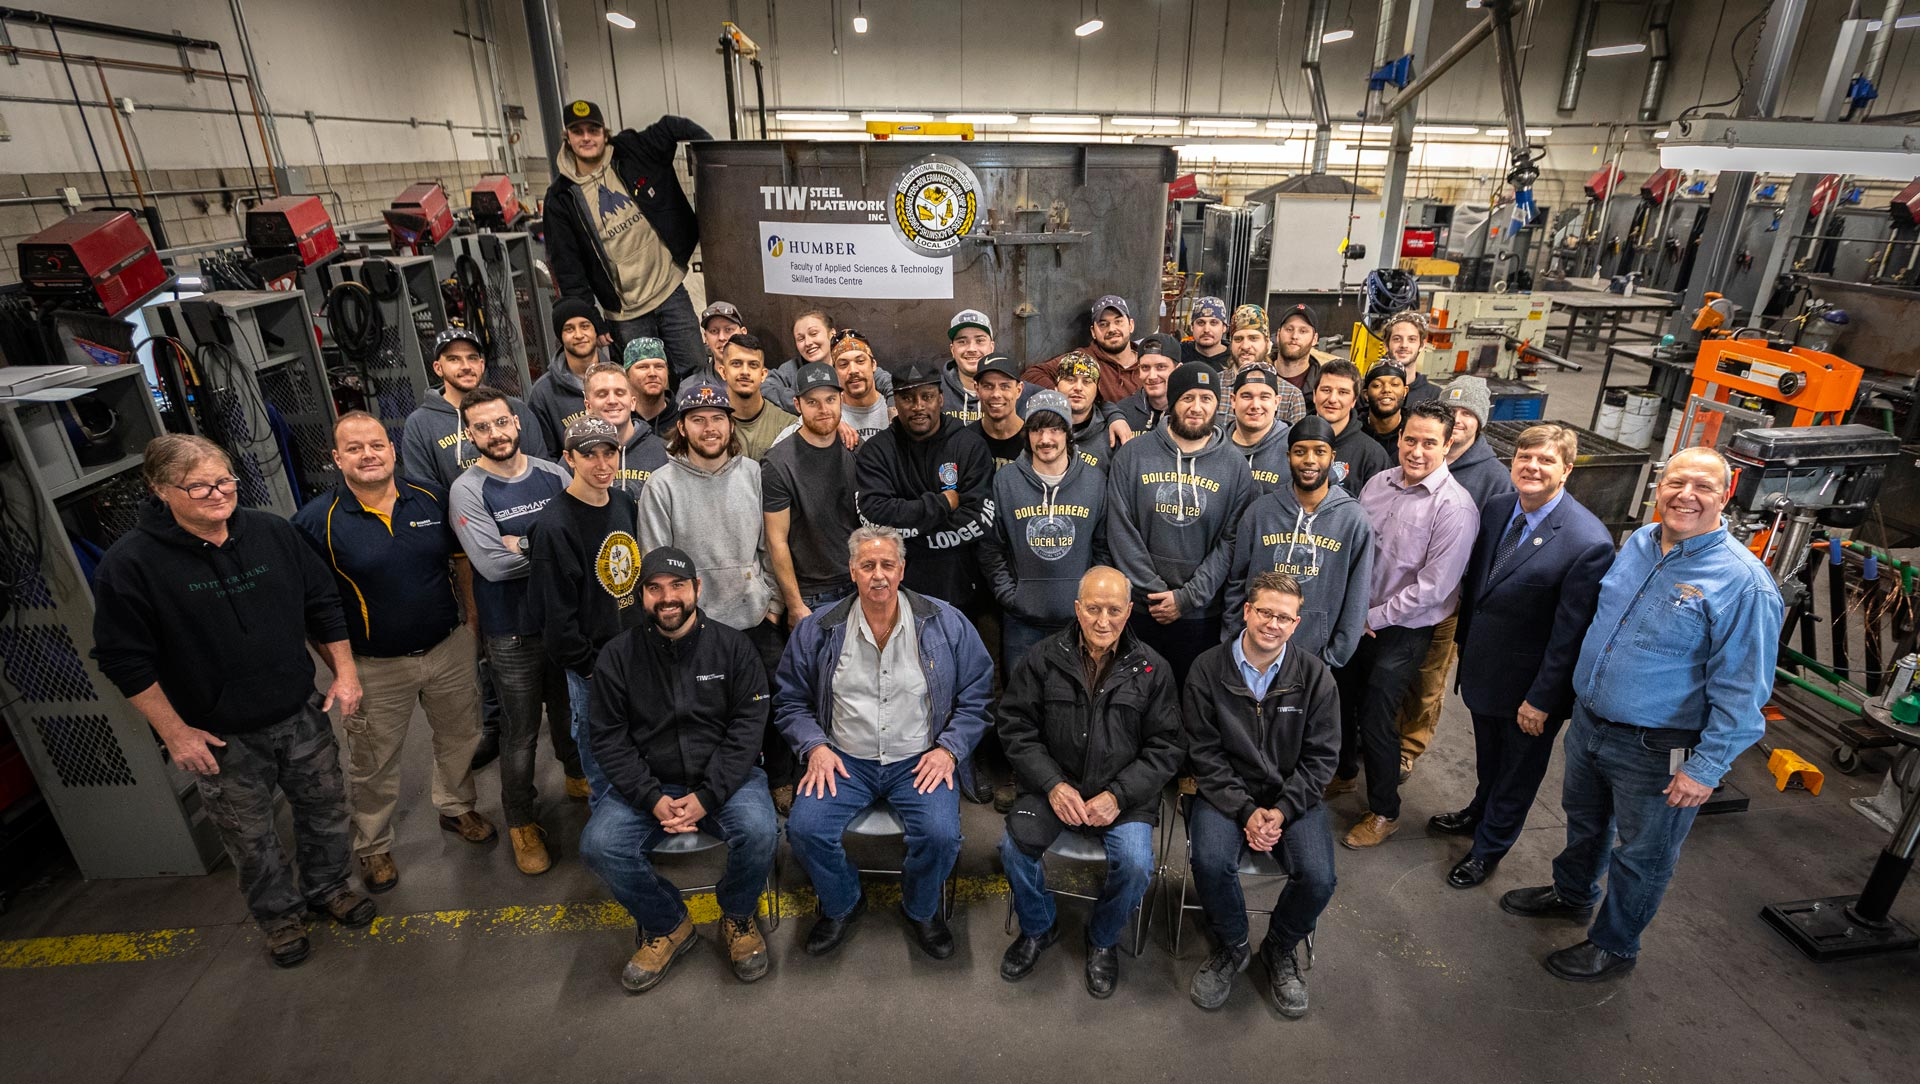 humber-college-tiw-steel-platework-boilermaker-tank-donation-group-shot-1